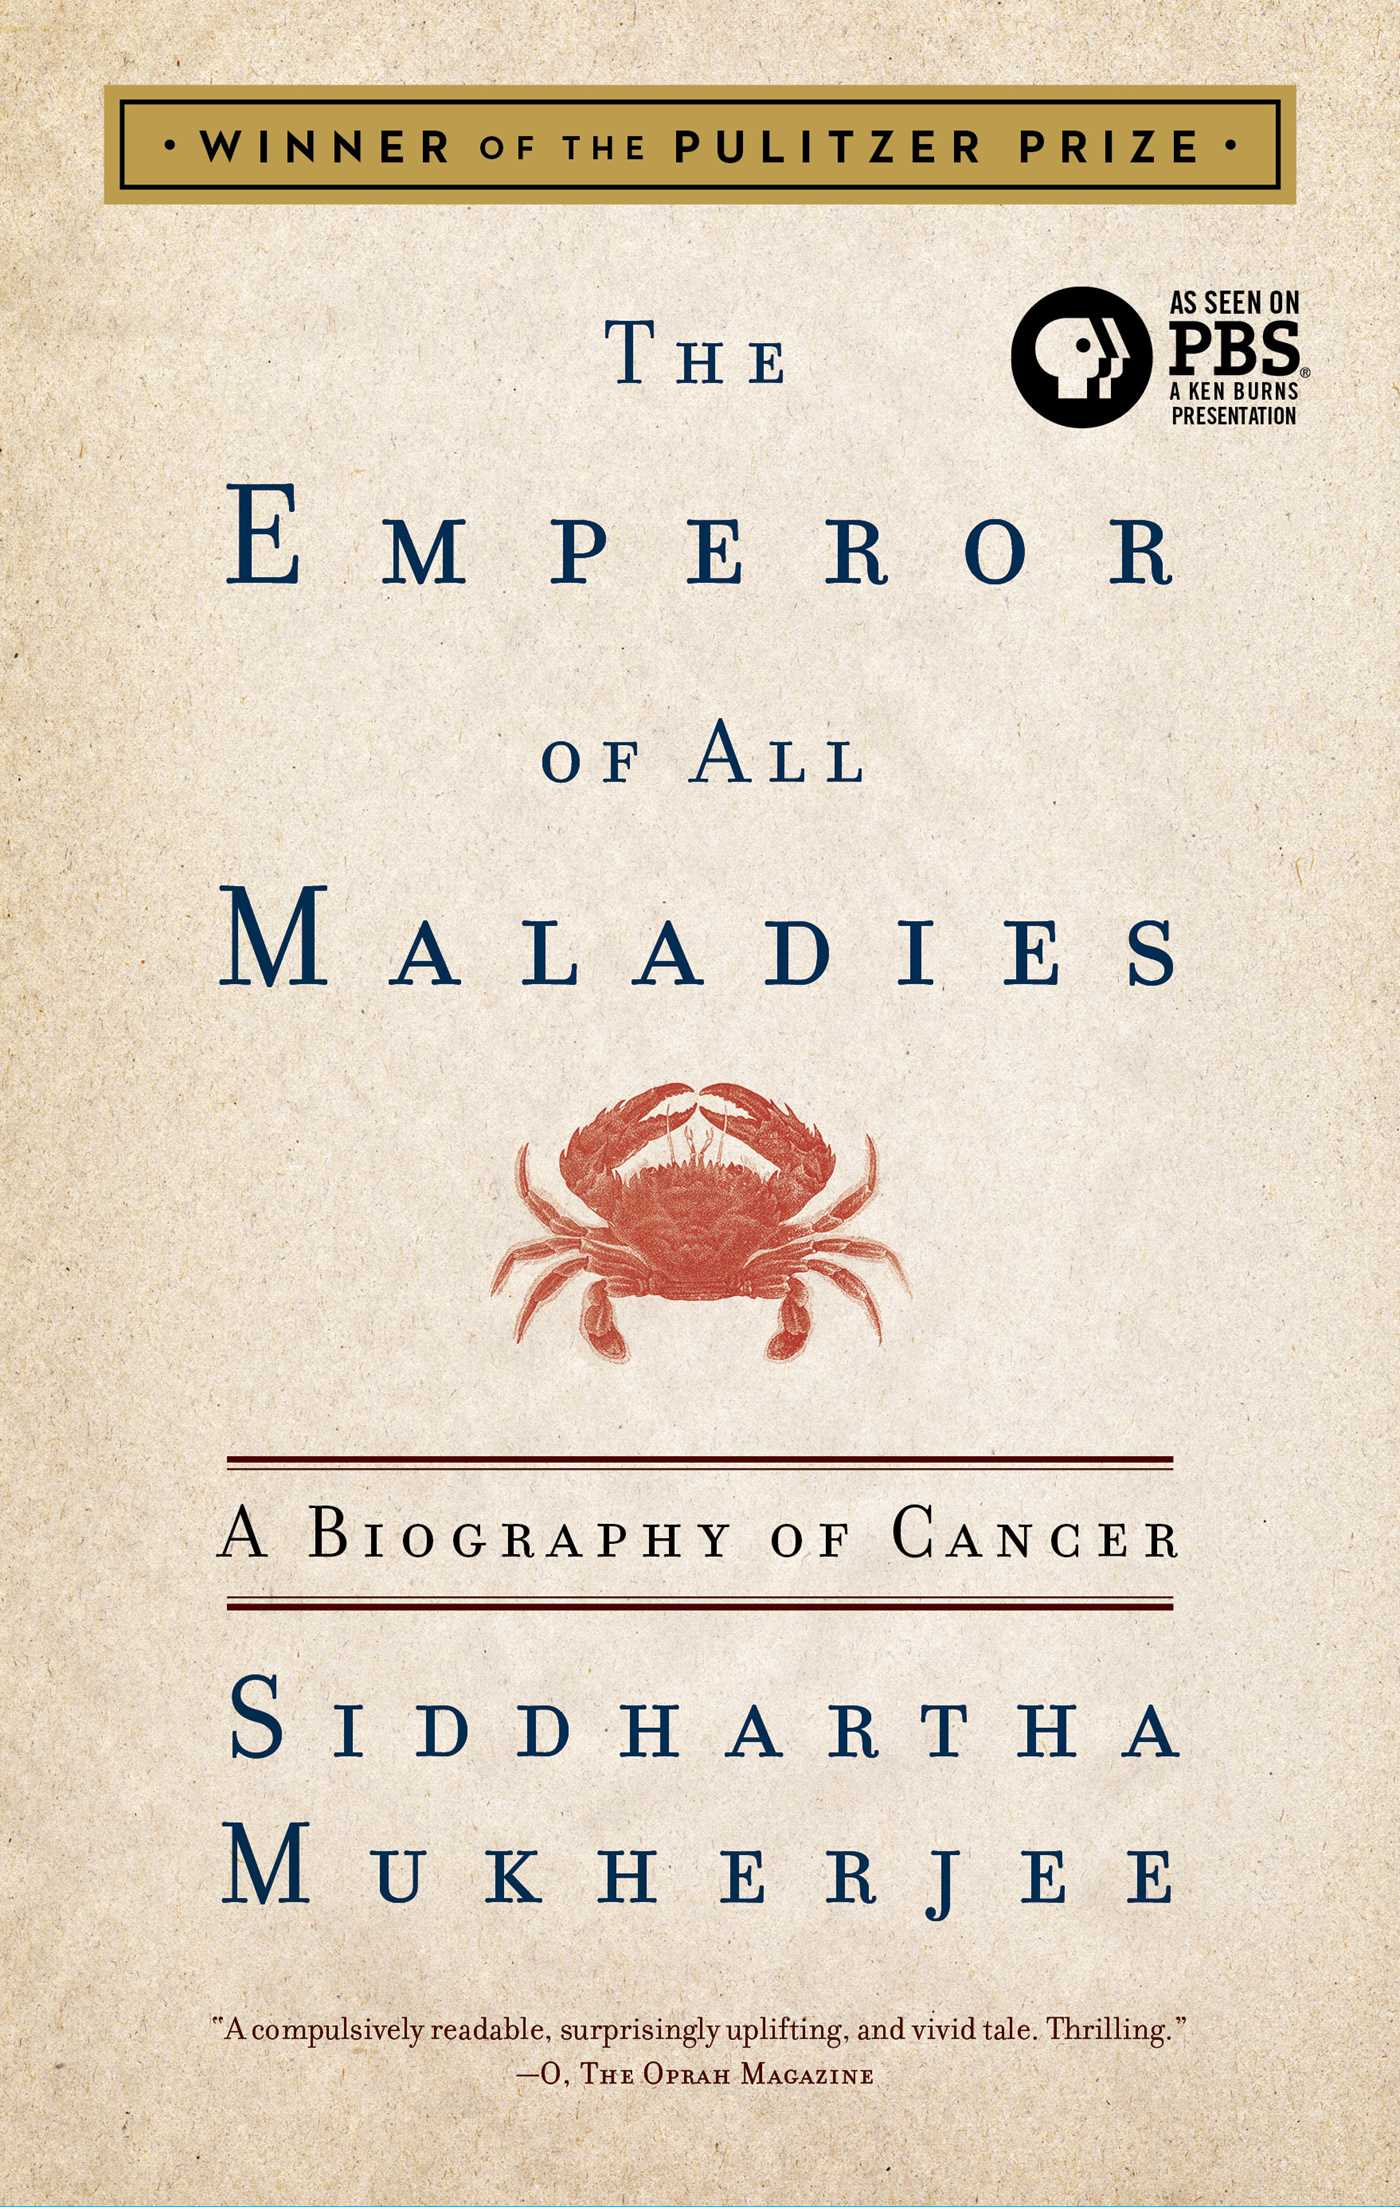 Emperor-of-all-maladies-9781439170915_hr